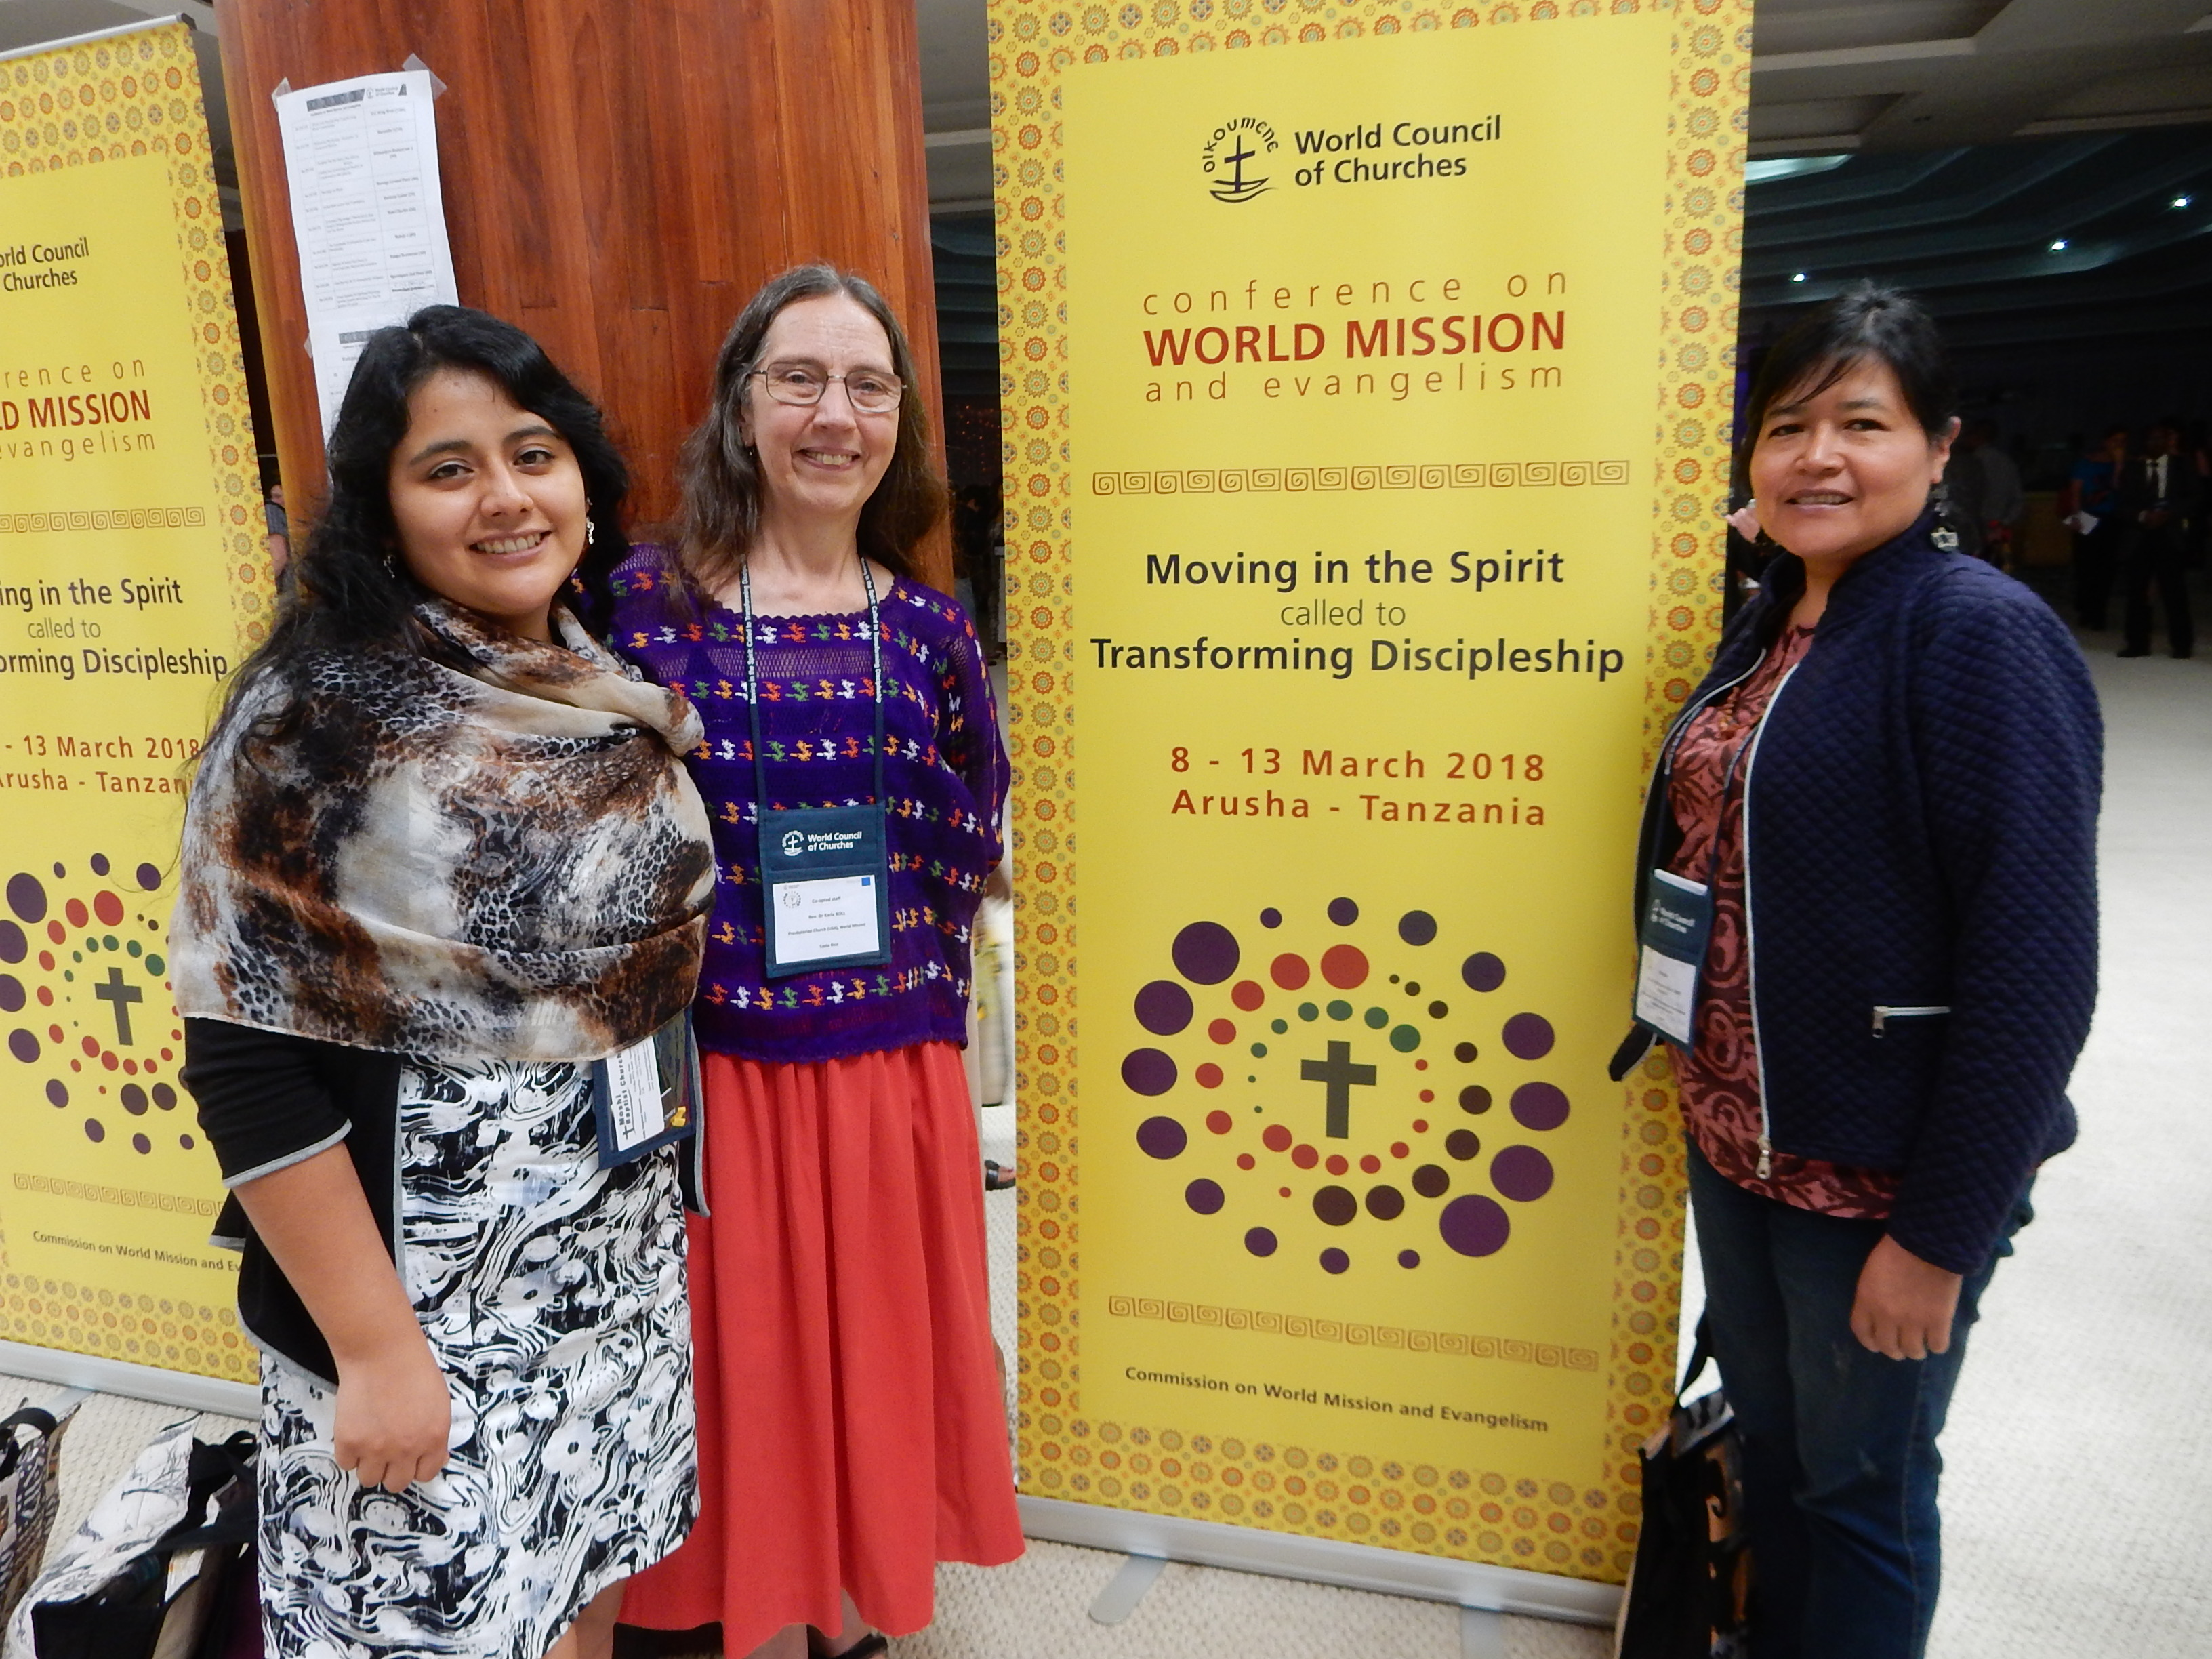 Nataly Romero (left) with Karla (center) and Margarita de la Torre (right), a UBL graduate who serves on the Commission for World Mission and Evangelism.